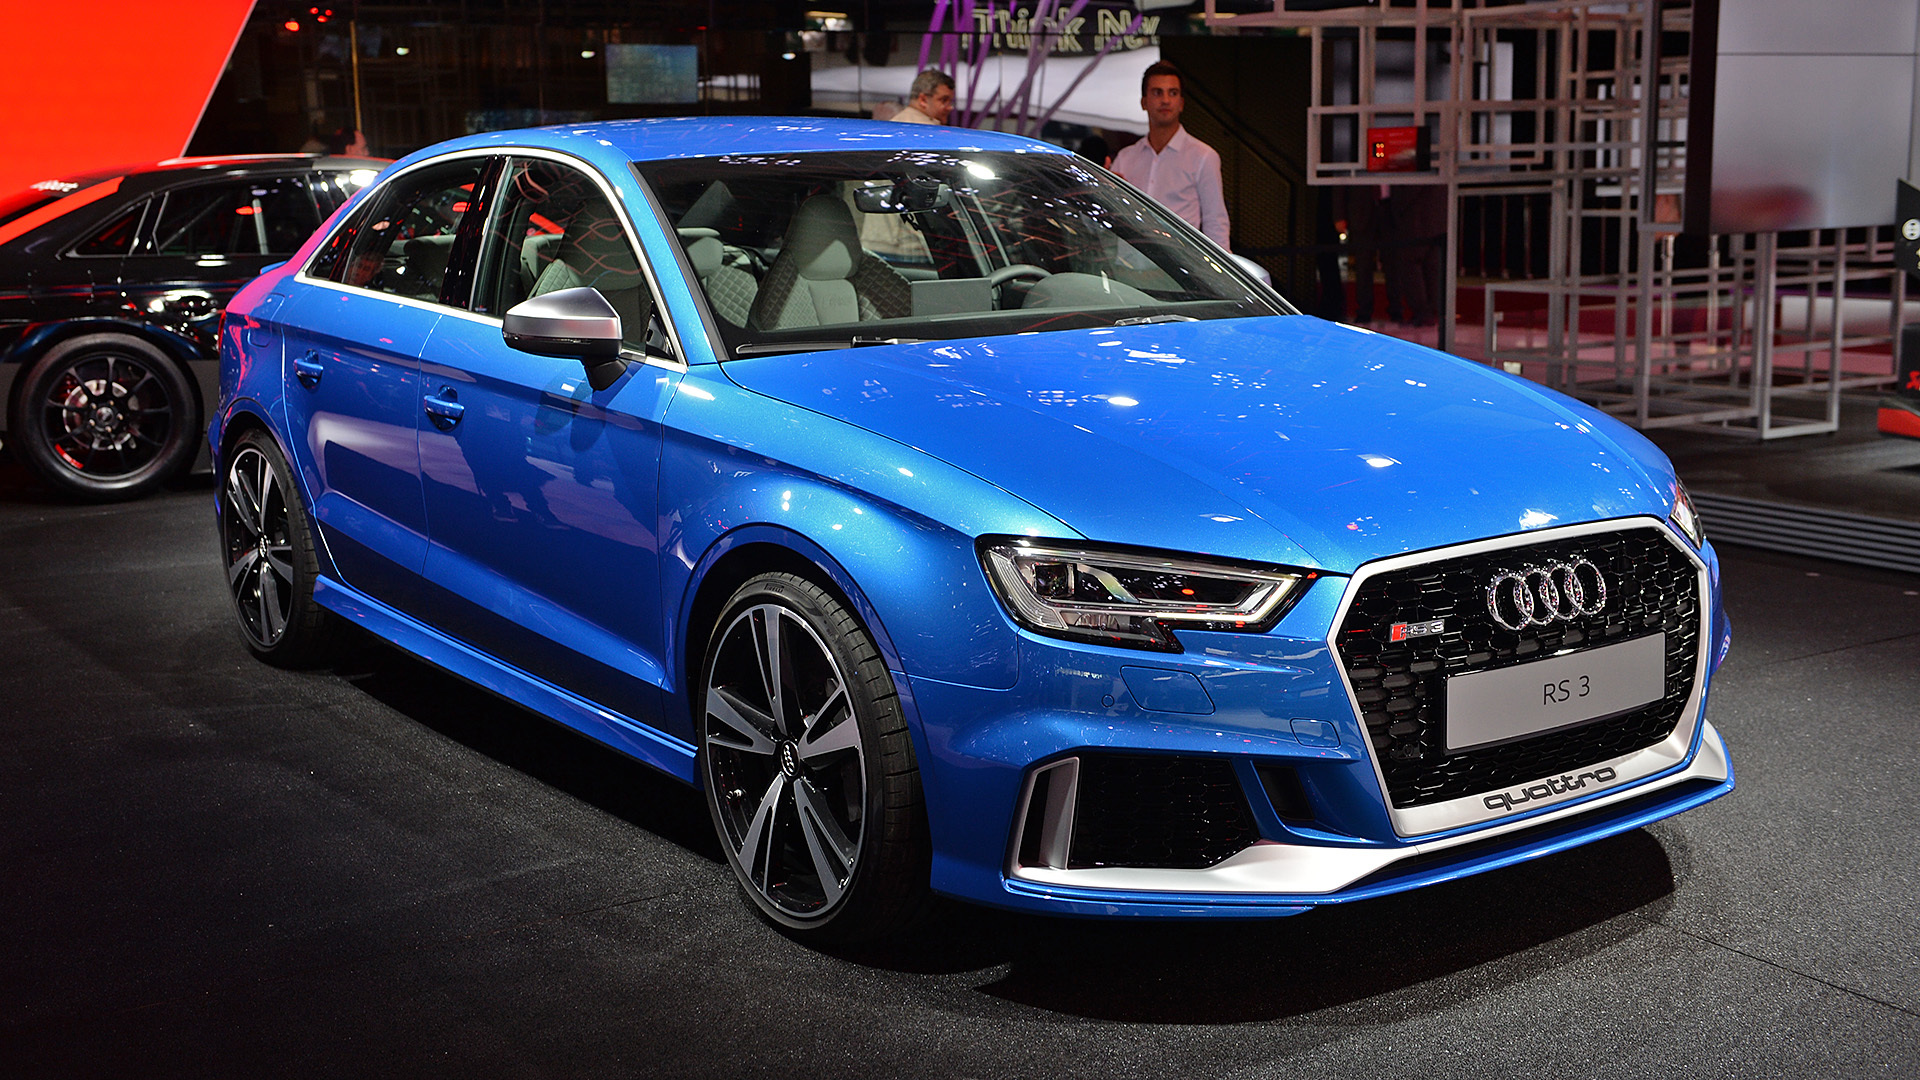 2018 Audi Rs3 Sedan Paris 2016 Photo Gallery Autoblog